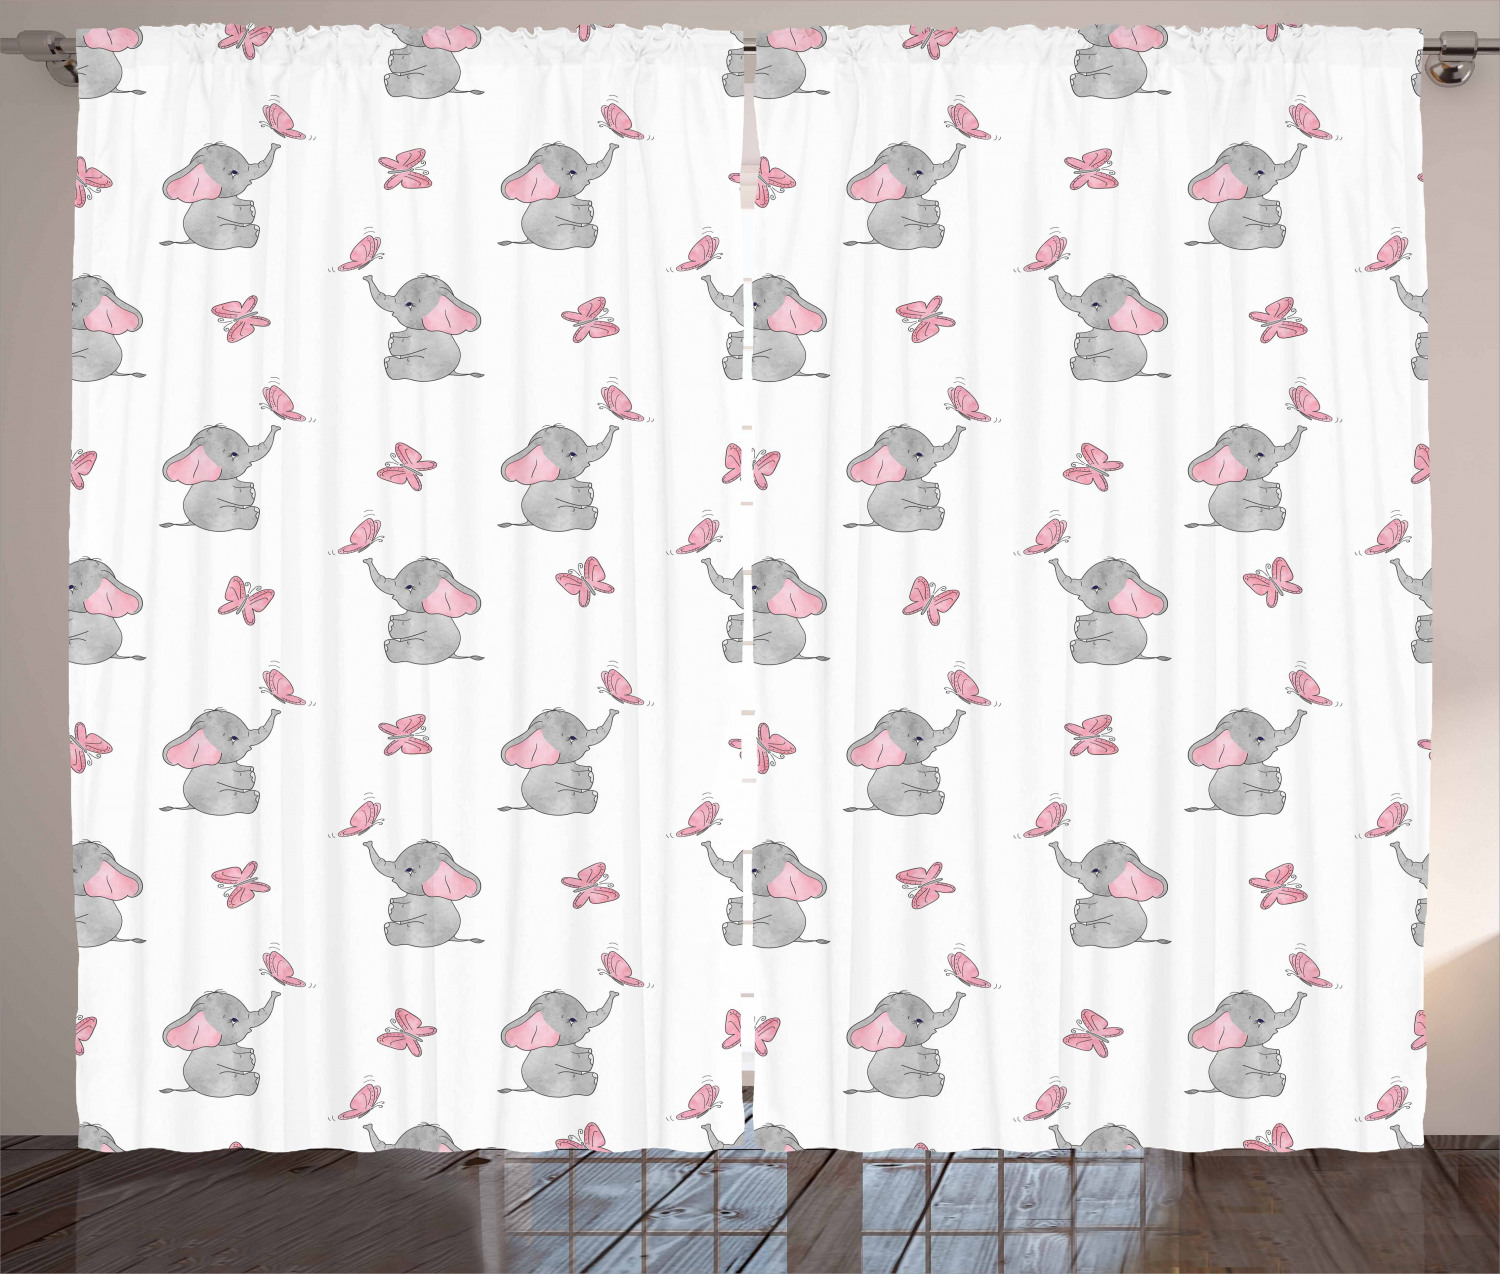 Elephant Nursery Curtains 2 Panels Set Baby Elephants Playing With Erflies Design Lovely Pattern Window D For Living Room Bedroom 108w X